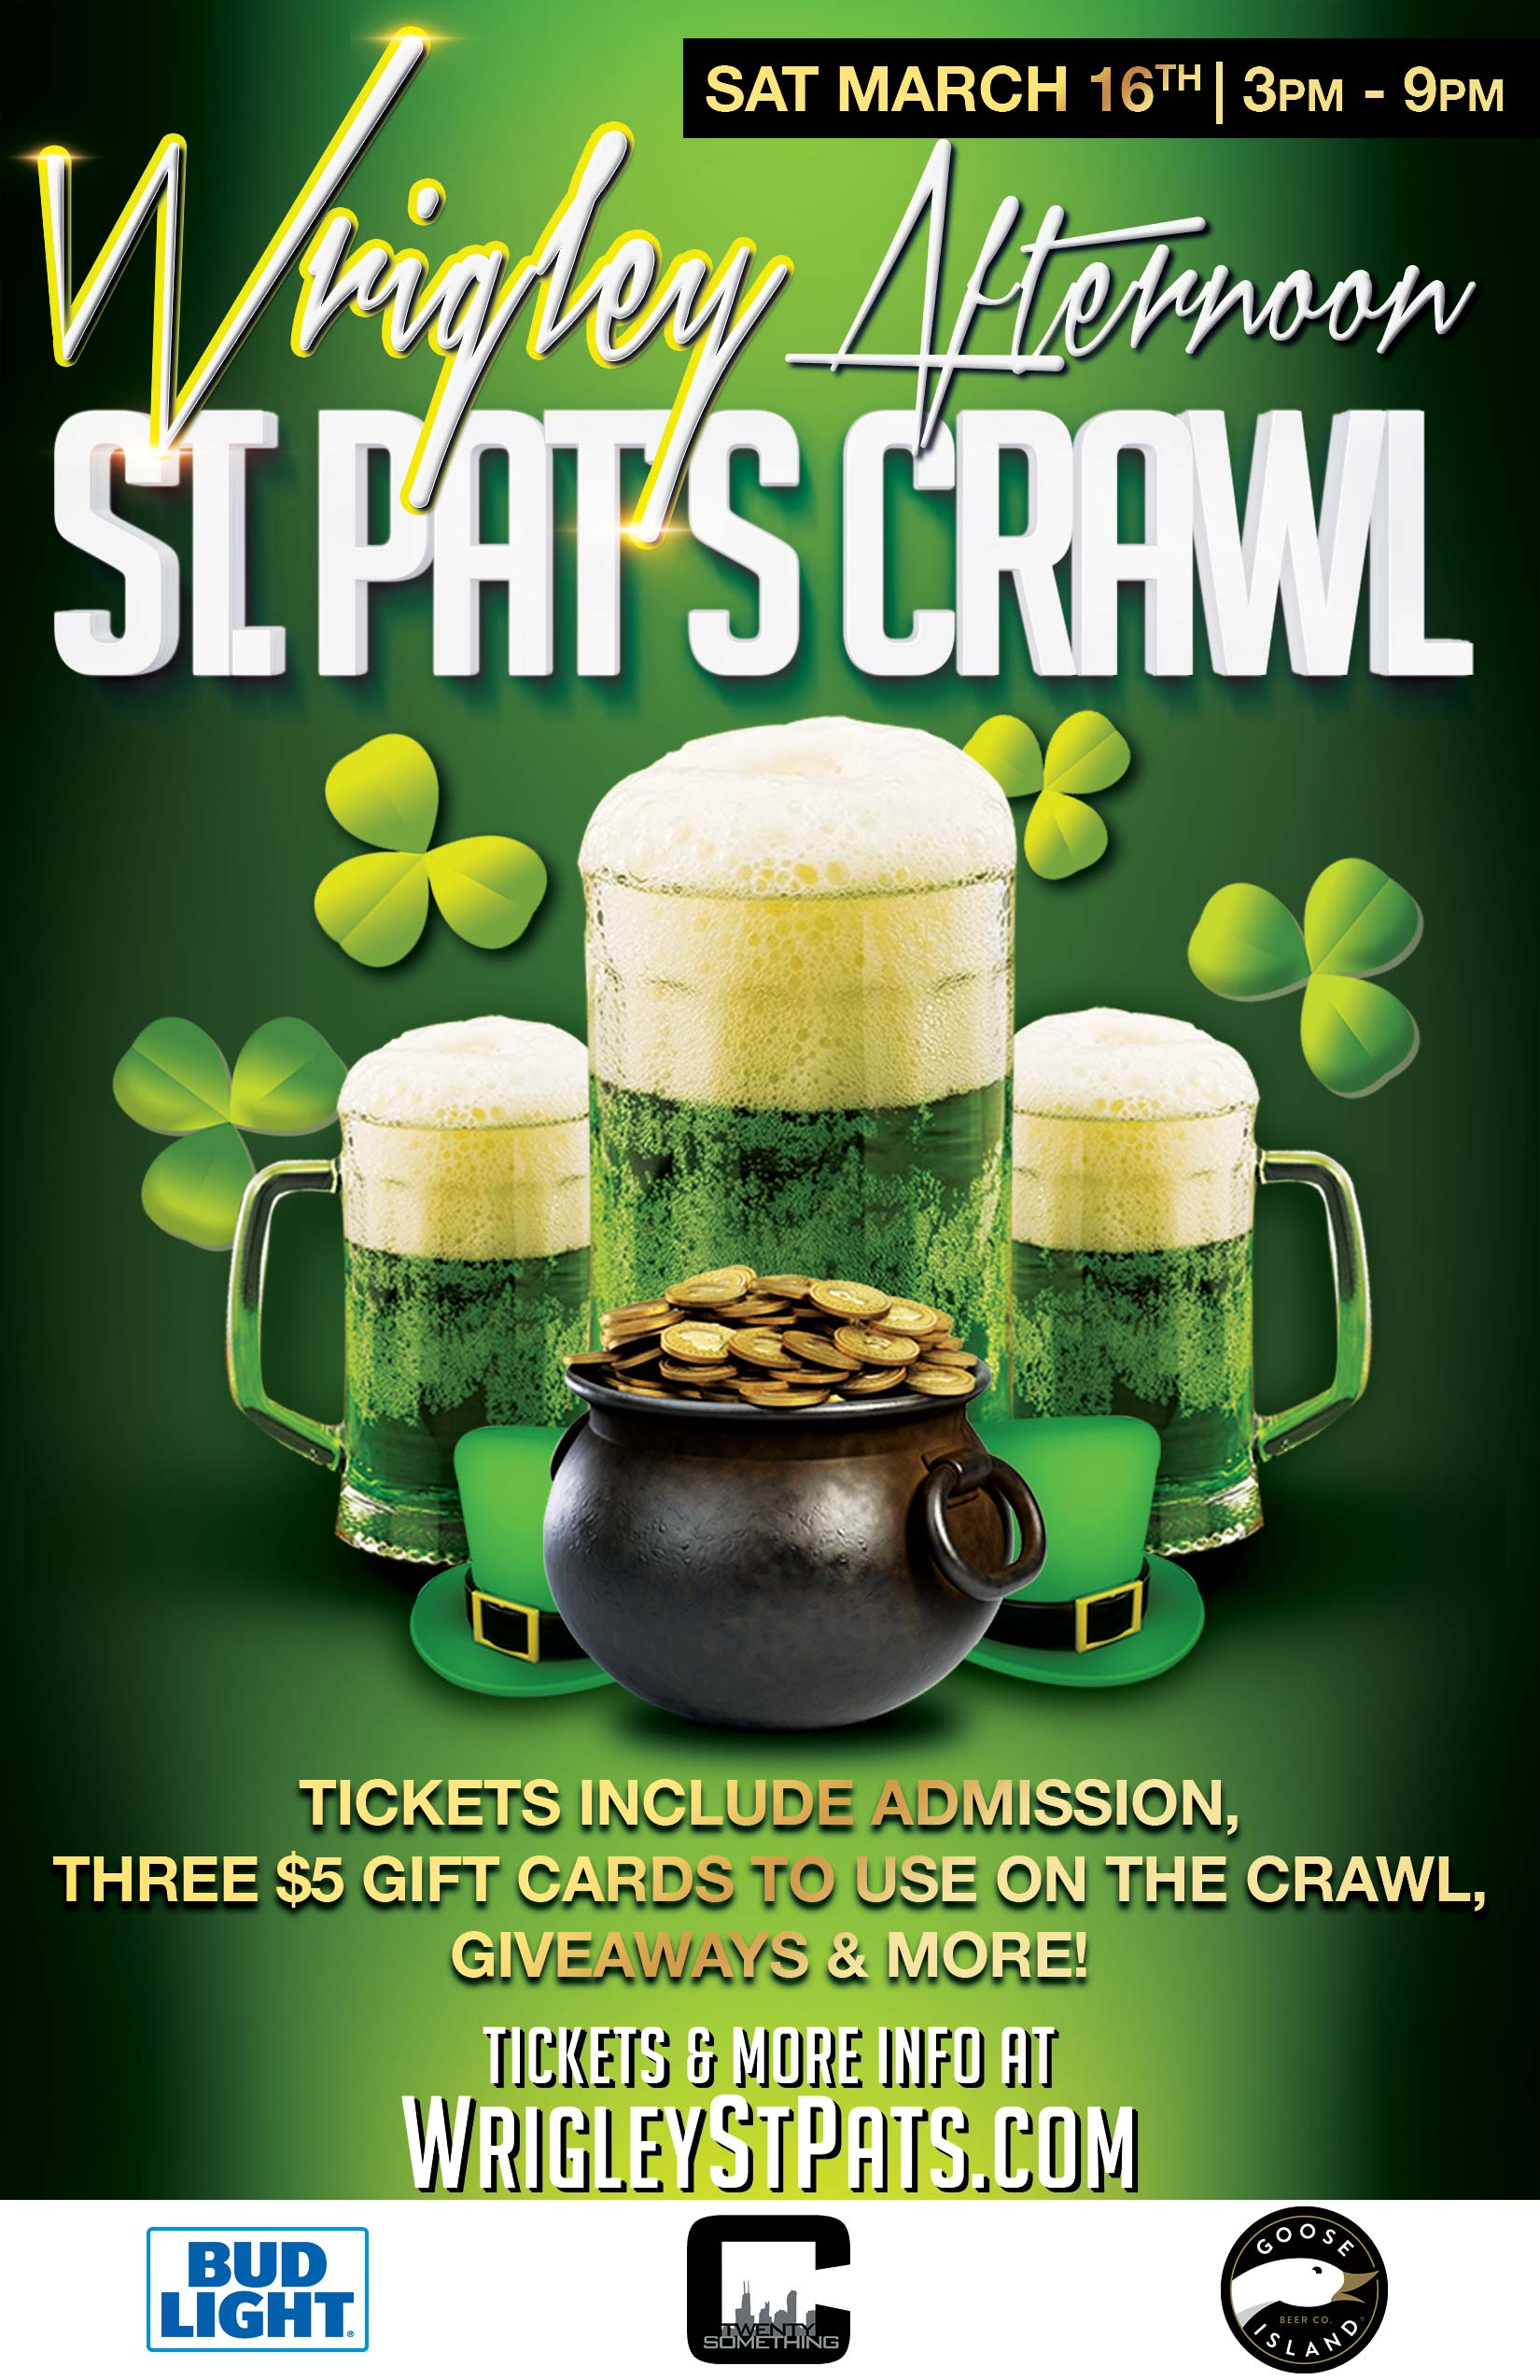 Wrigleyville Afternoon St. Patrick's Day Bar Crawl Party - Tickets include Admission, Three $5 Gift Cards to Use on the Crawl, Giveaways & MORE!